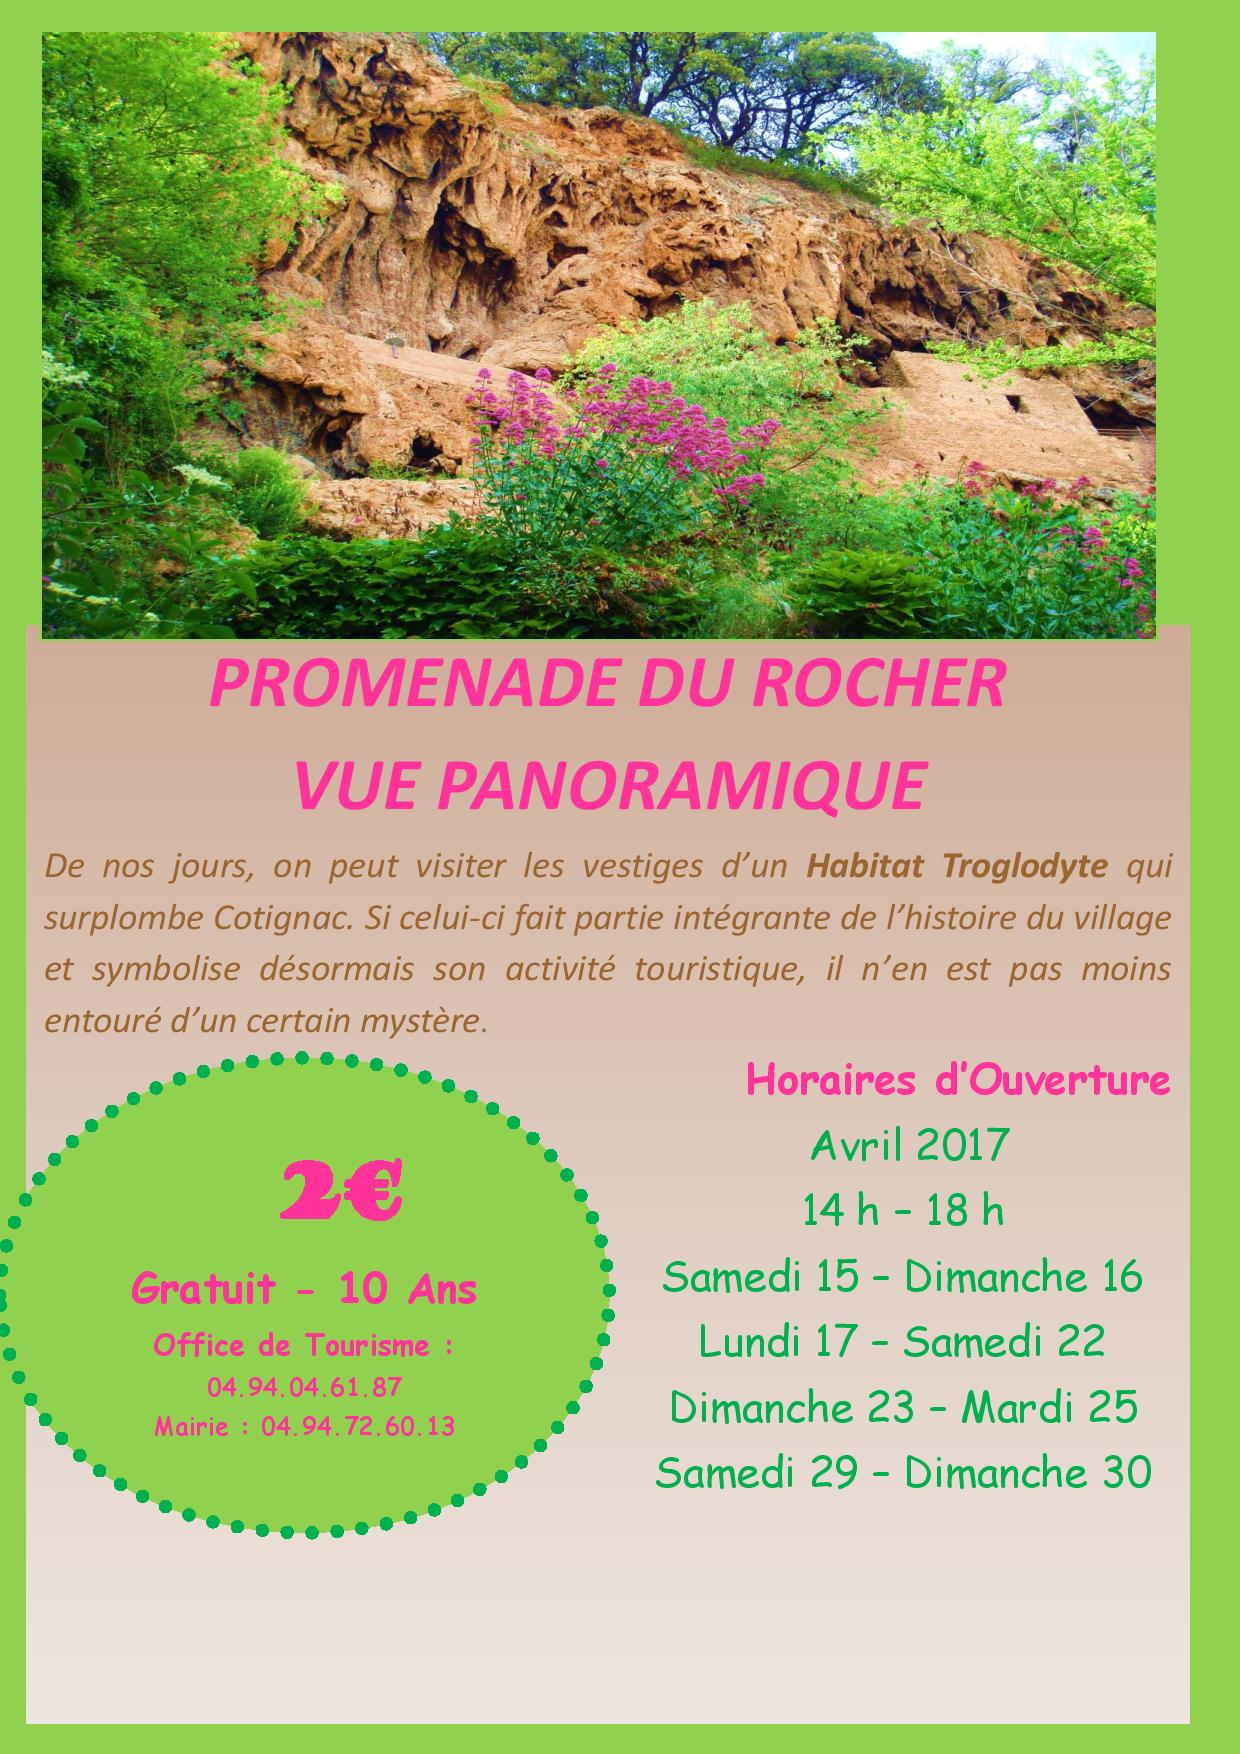 Affiche horaires rocher avril 2017-page-001